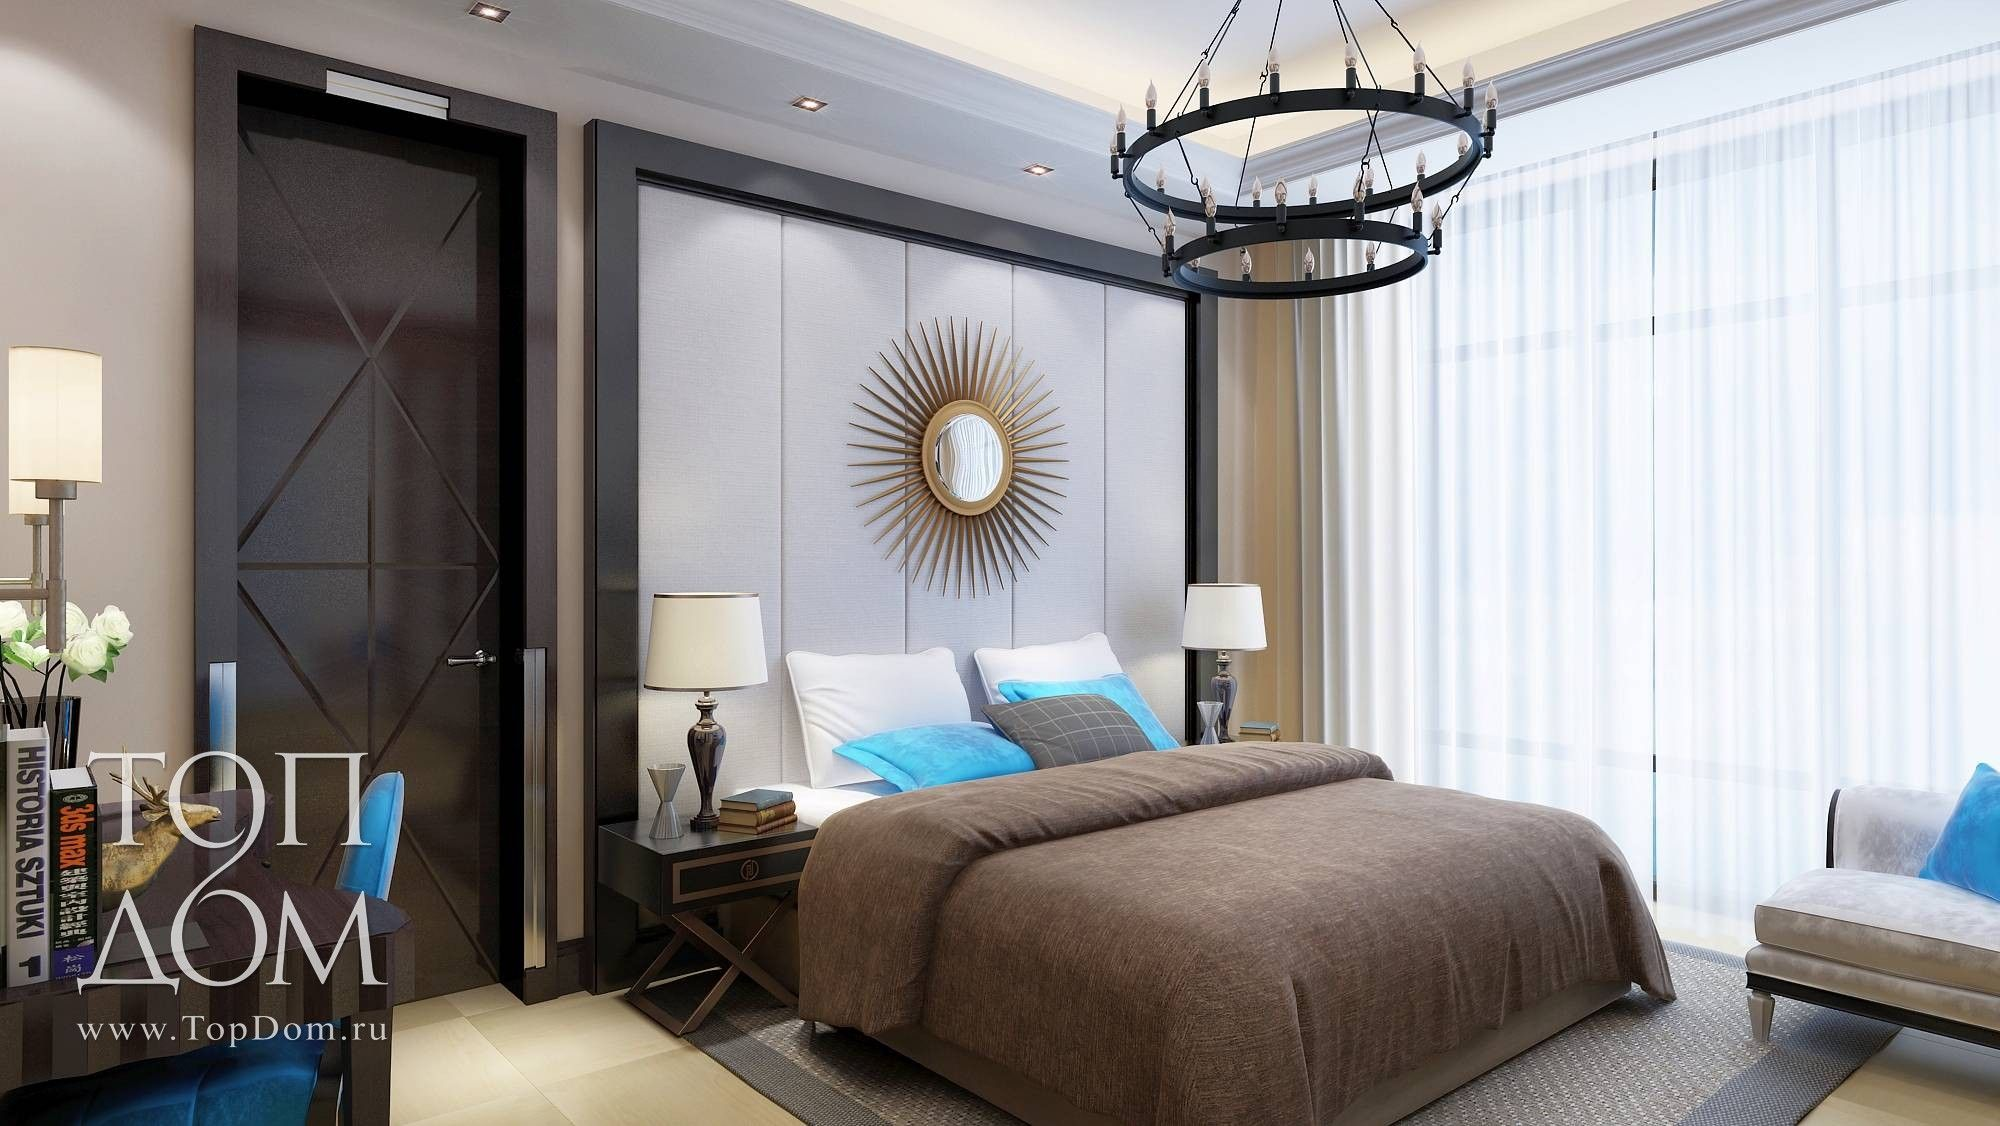 Interior Design Of The Bedroom In Brown Tones With Blue